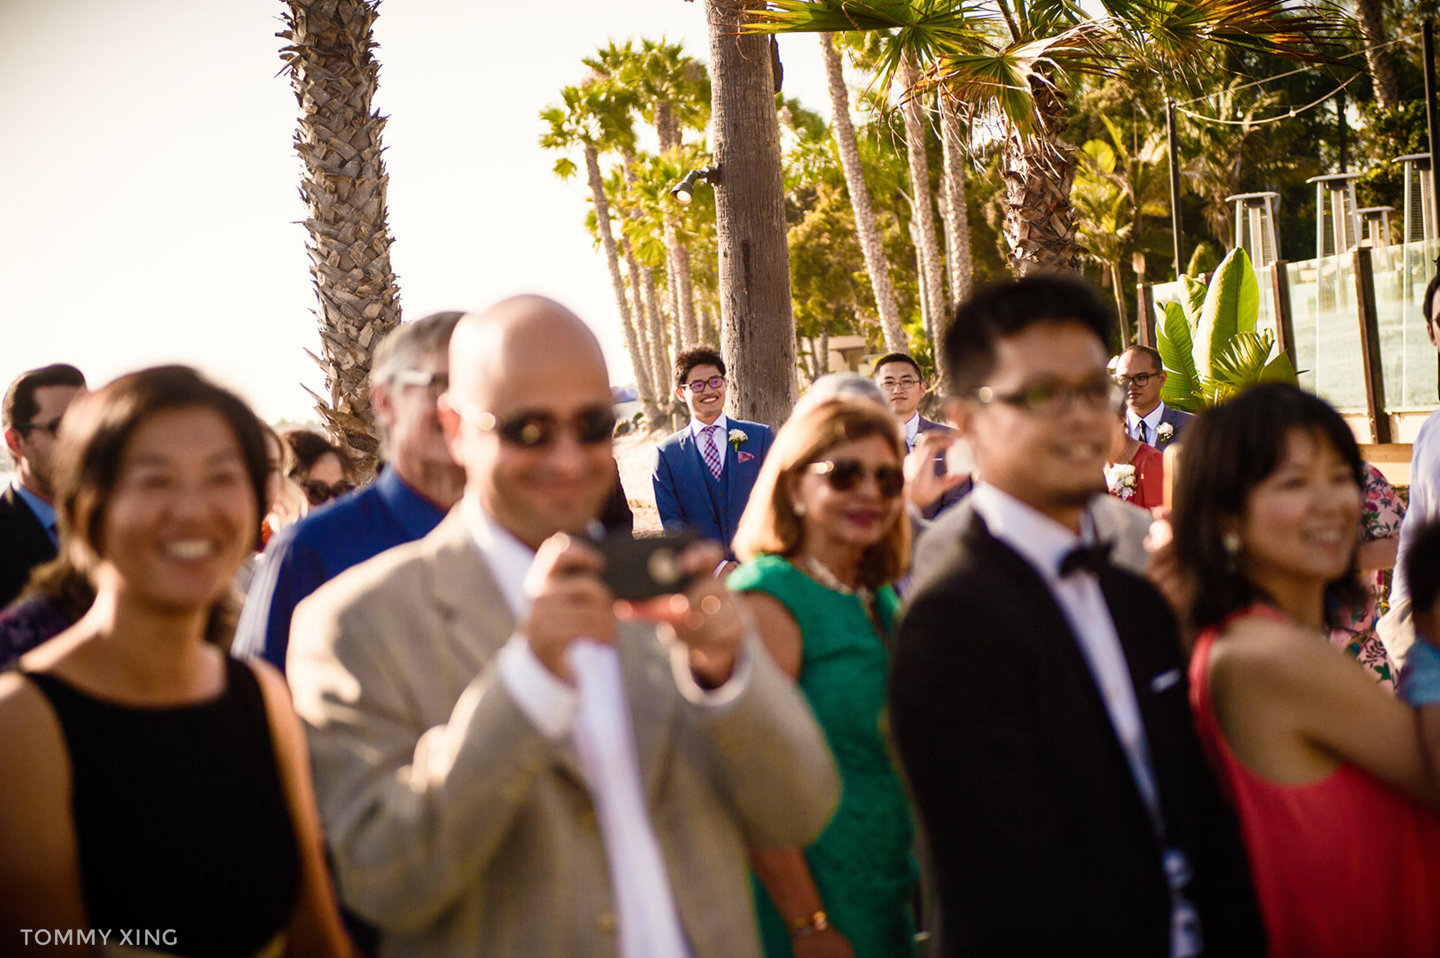 Paradise Point Resort Wedding Xiaolu & Bin San Diego 圣地亚哥婚礼摄影跟拍 Tommy Xing Photography 洛杉矶婚礼婚纱照摄影师 111.jpg